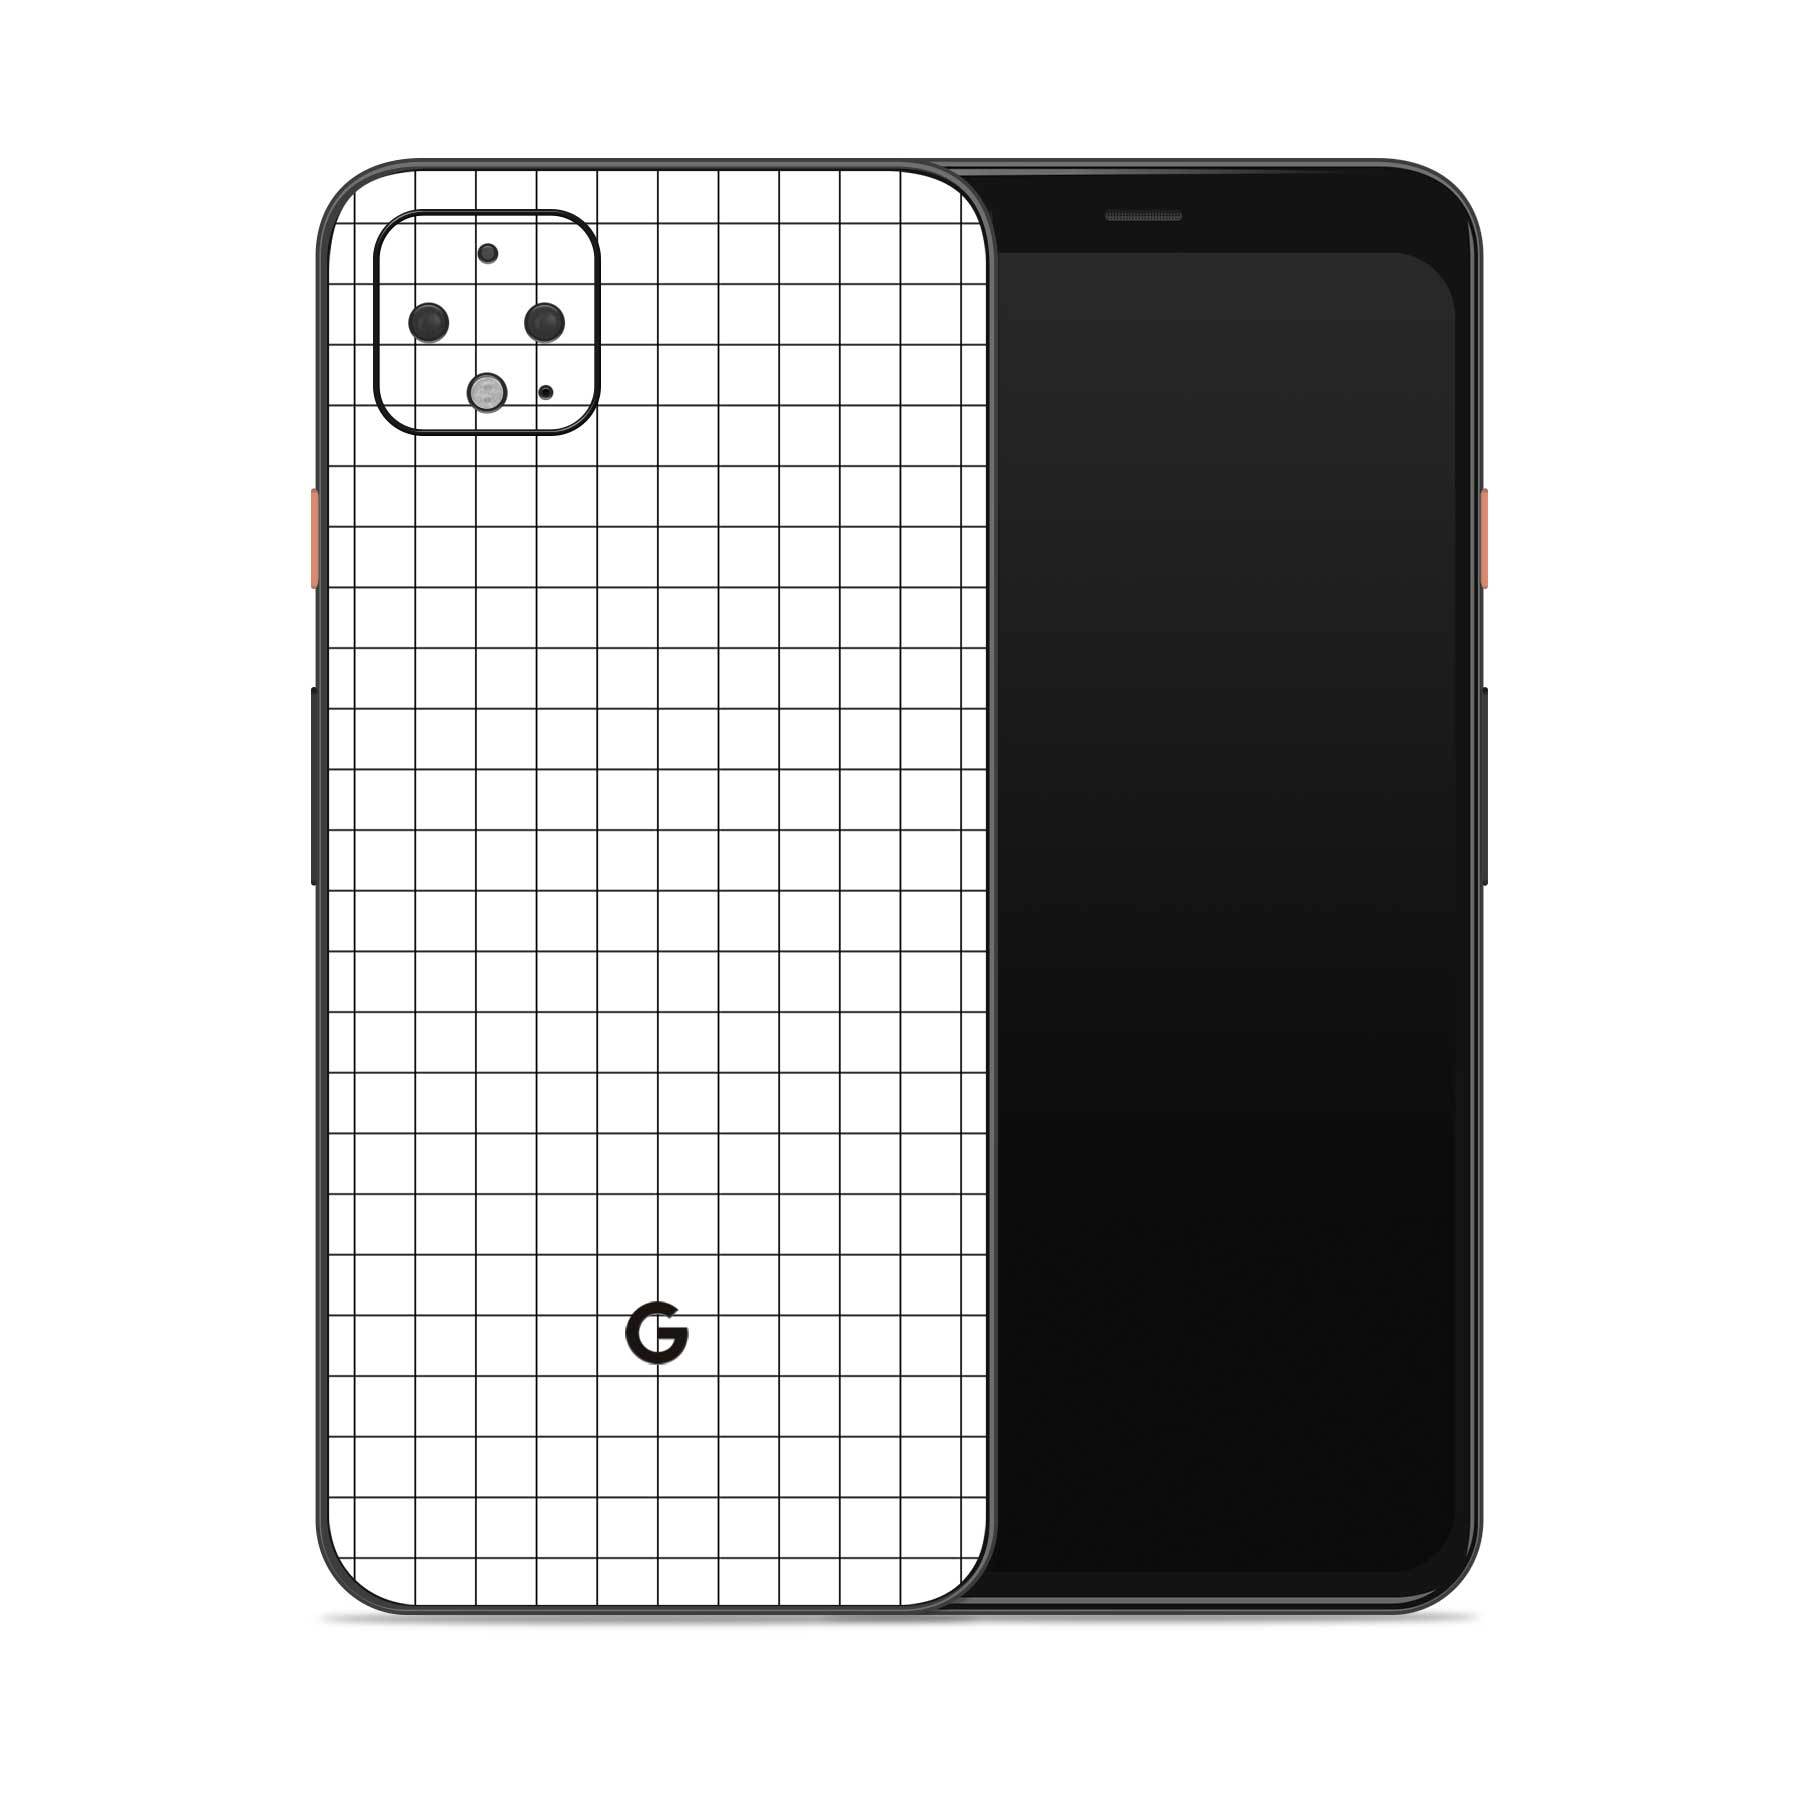 Structure Pixel 4 XL Cover